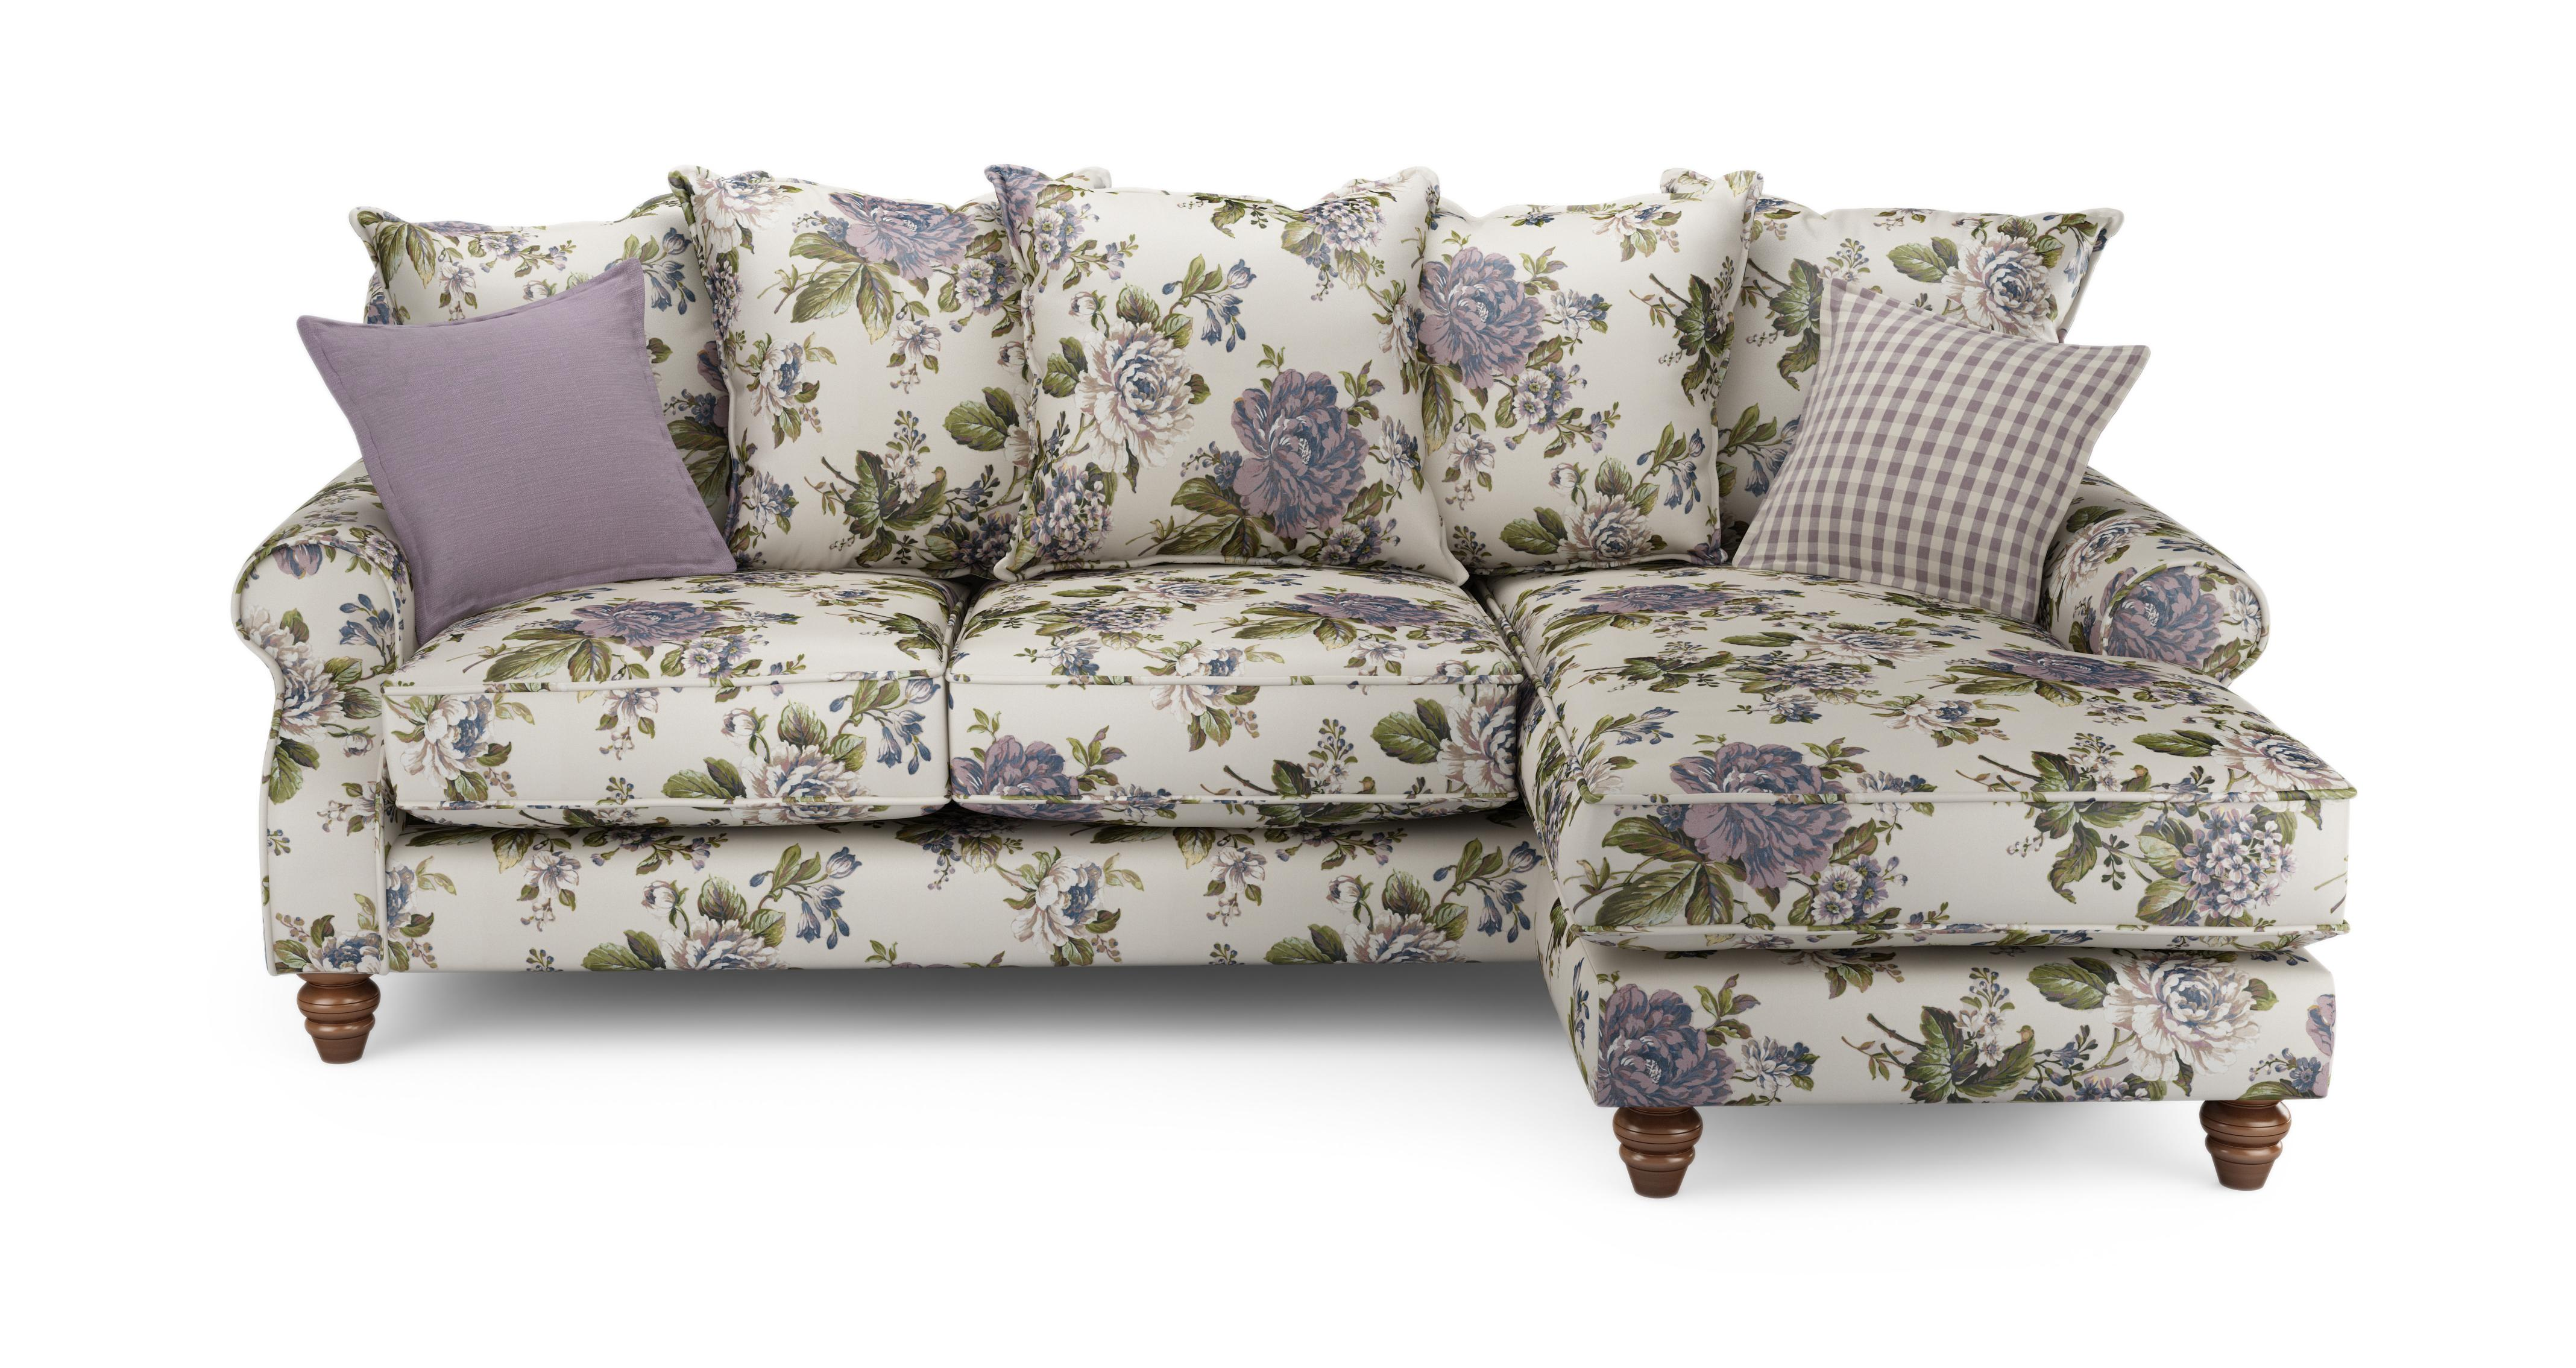 Ellie Floral Right Hand Facing 4 Seater Chaise End Sofa Ellie Floral   DFS  sc 1 st  DFS : chaise end sofa - Sectionals, Sofas & Couches